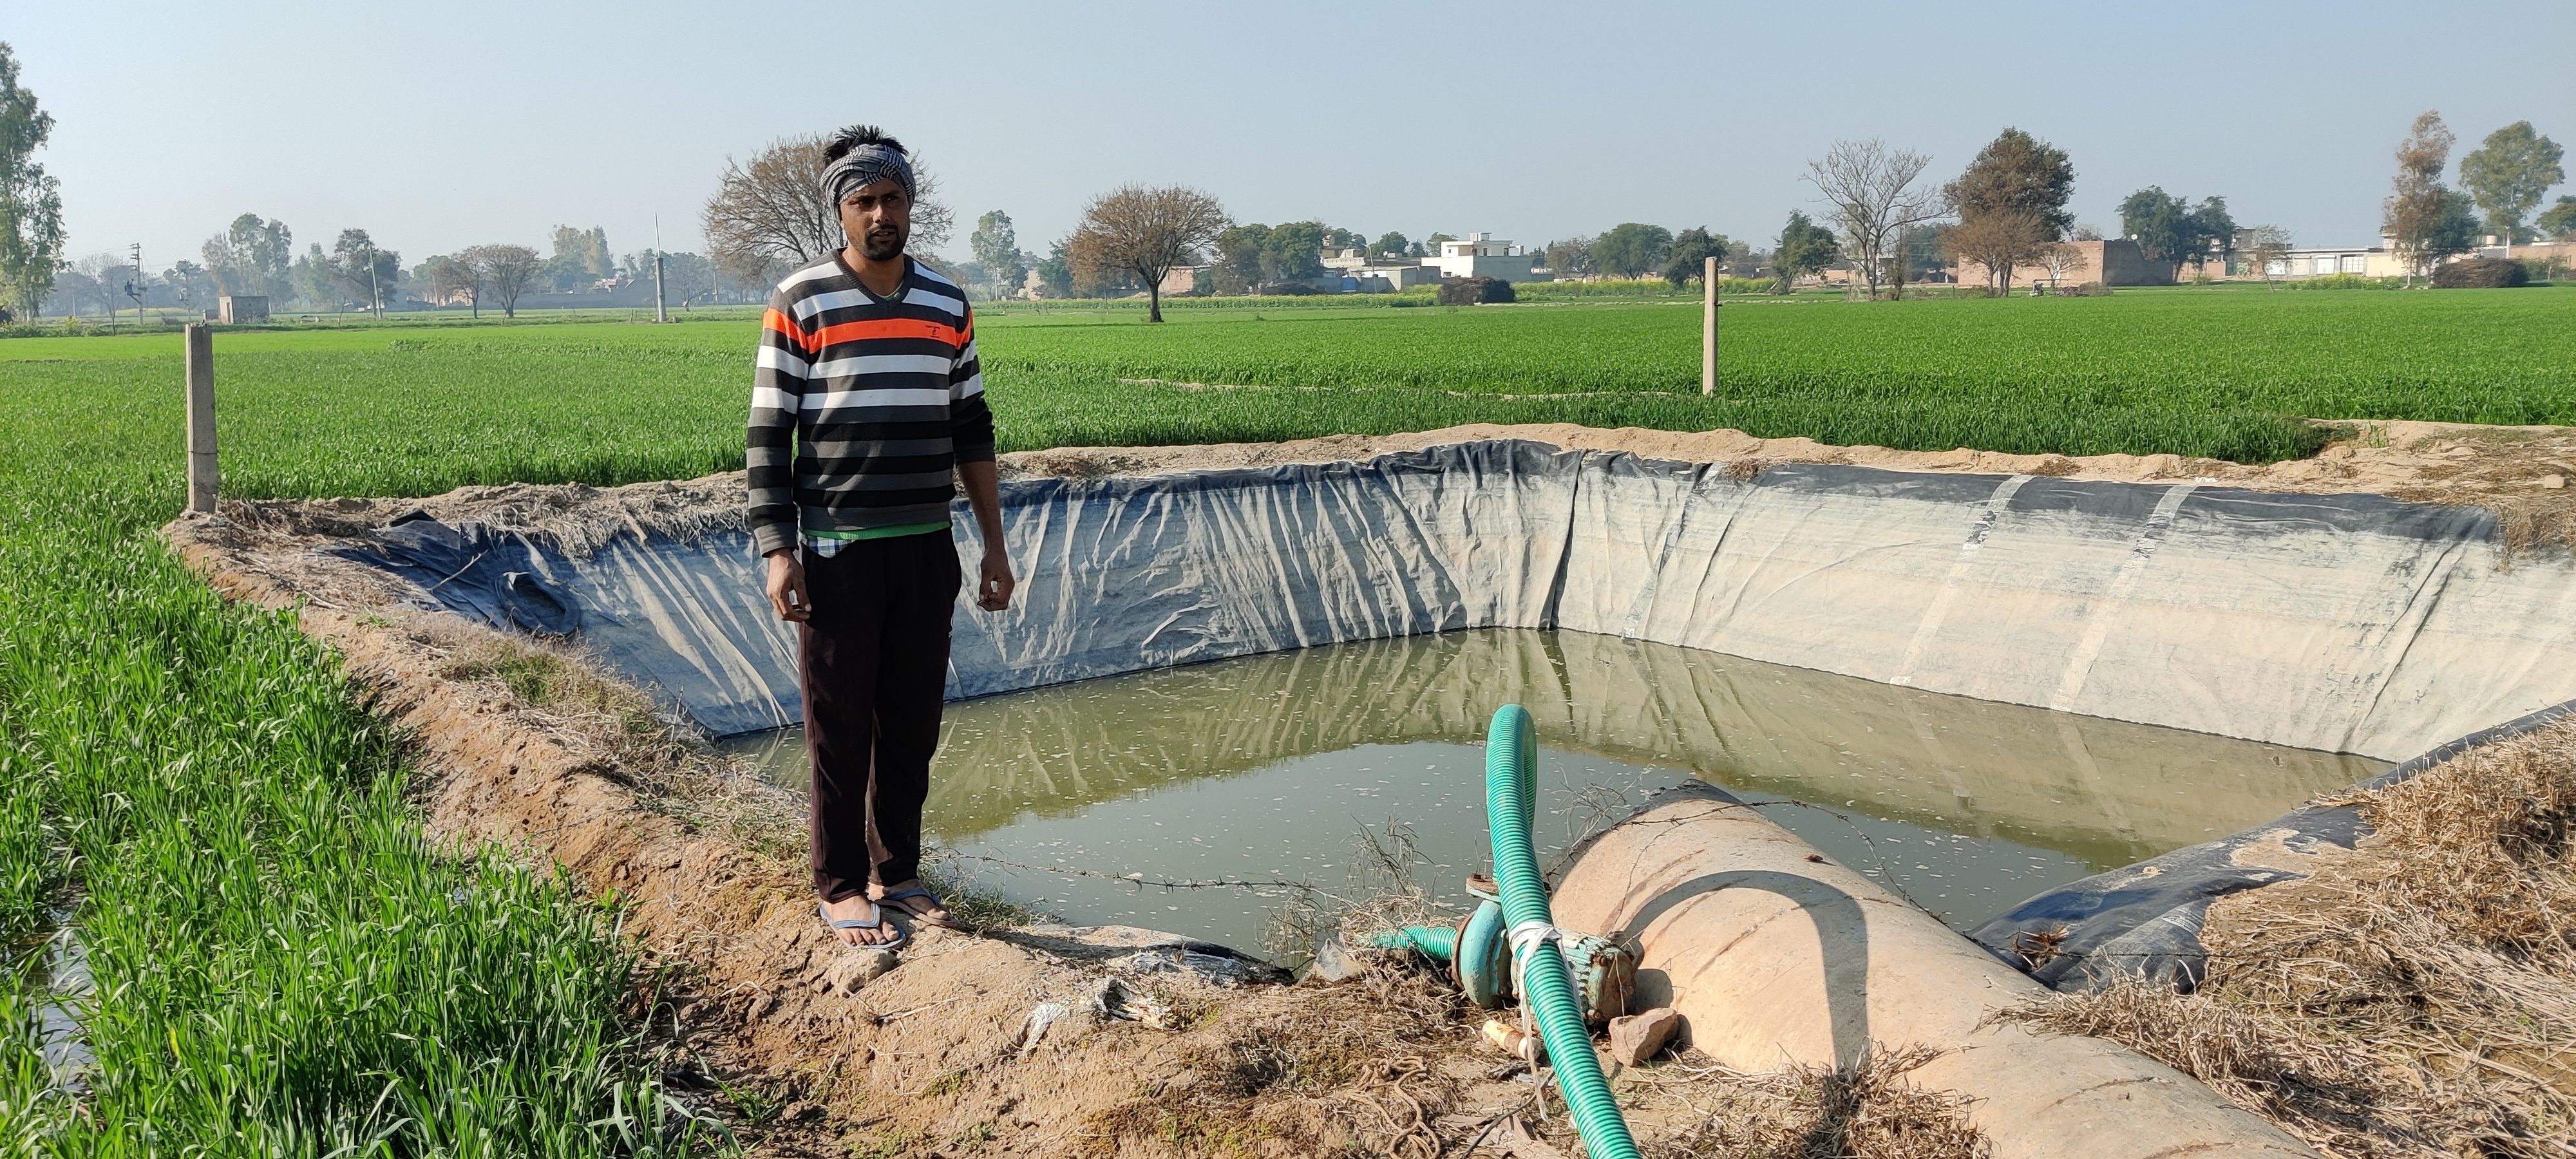 Behaviour Change at the Heart of India's Water Woes